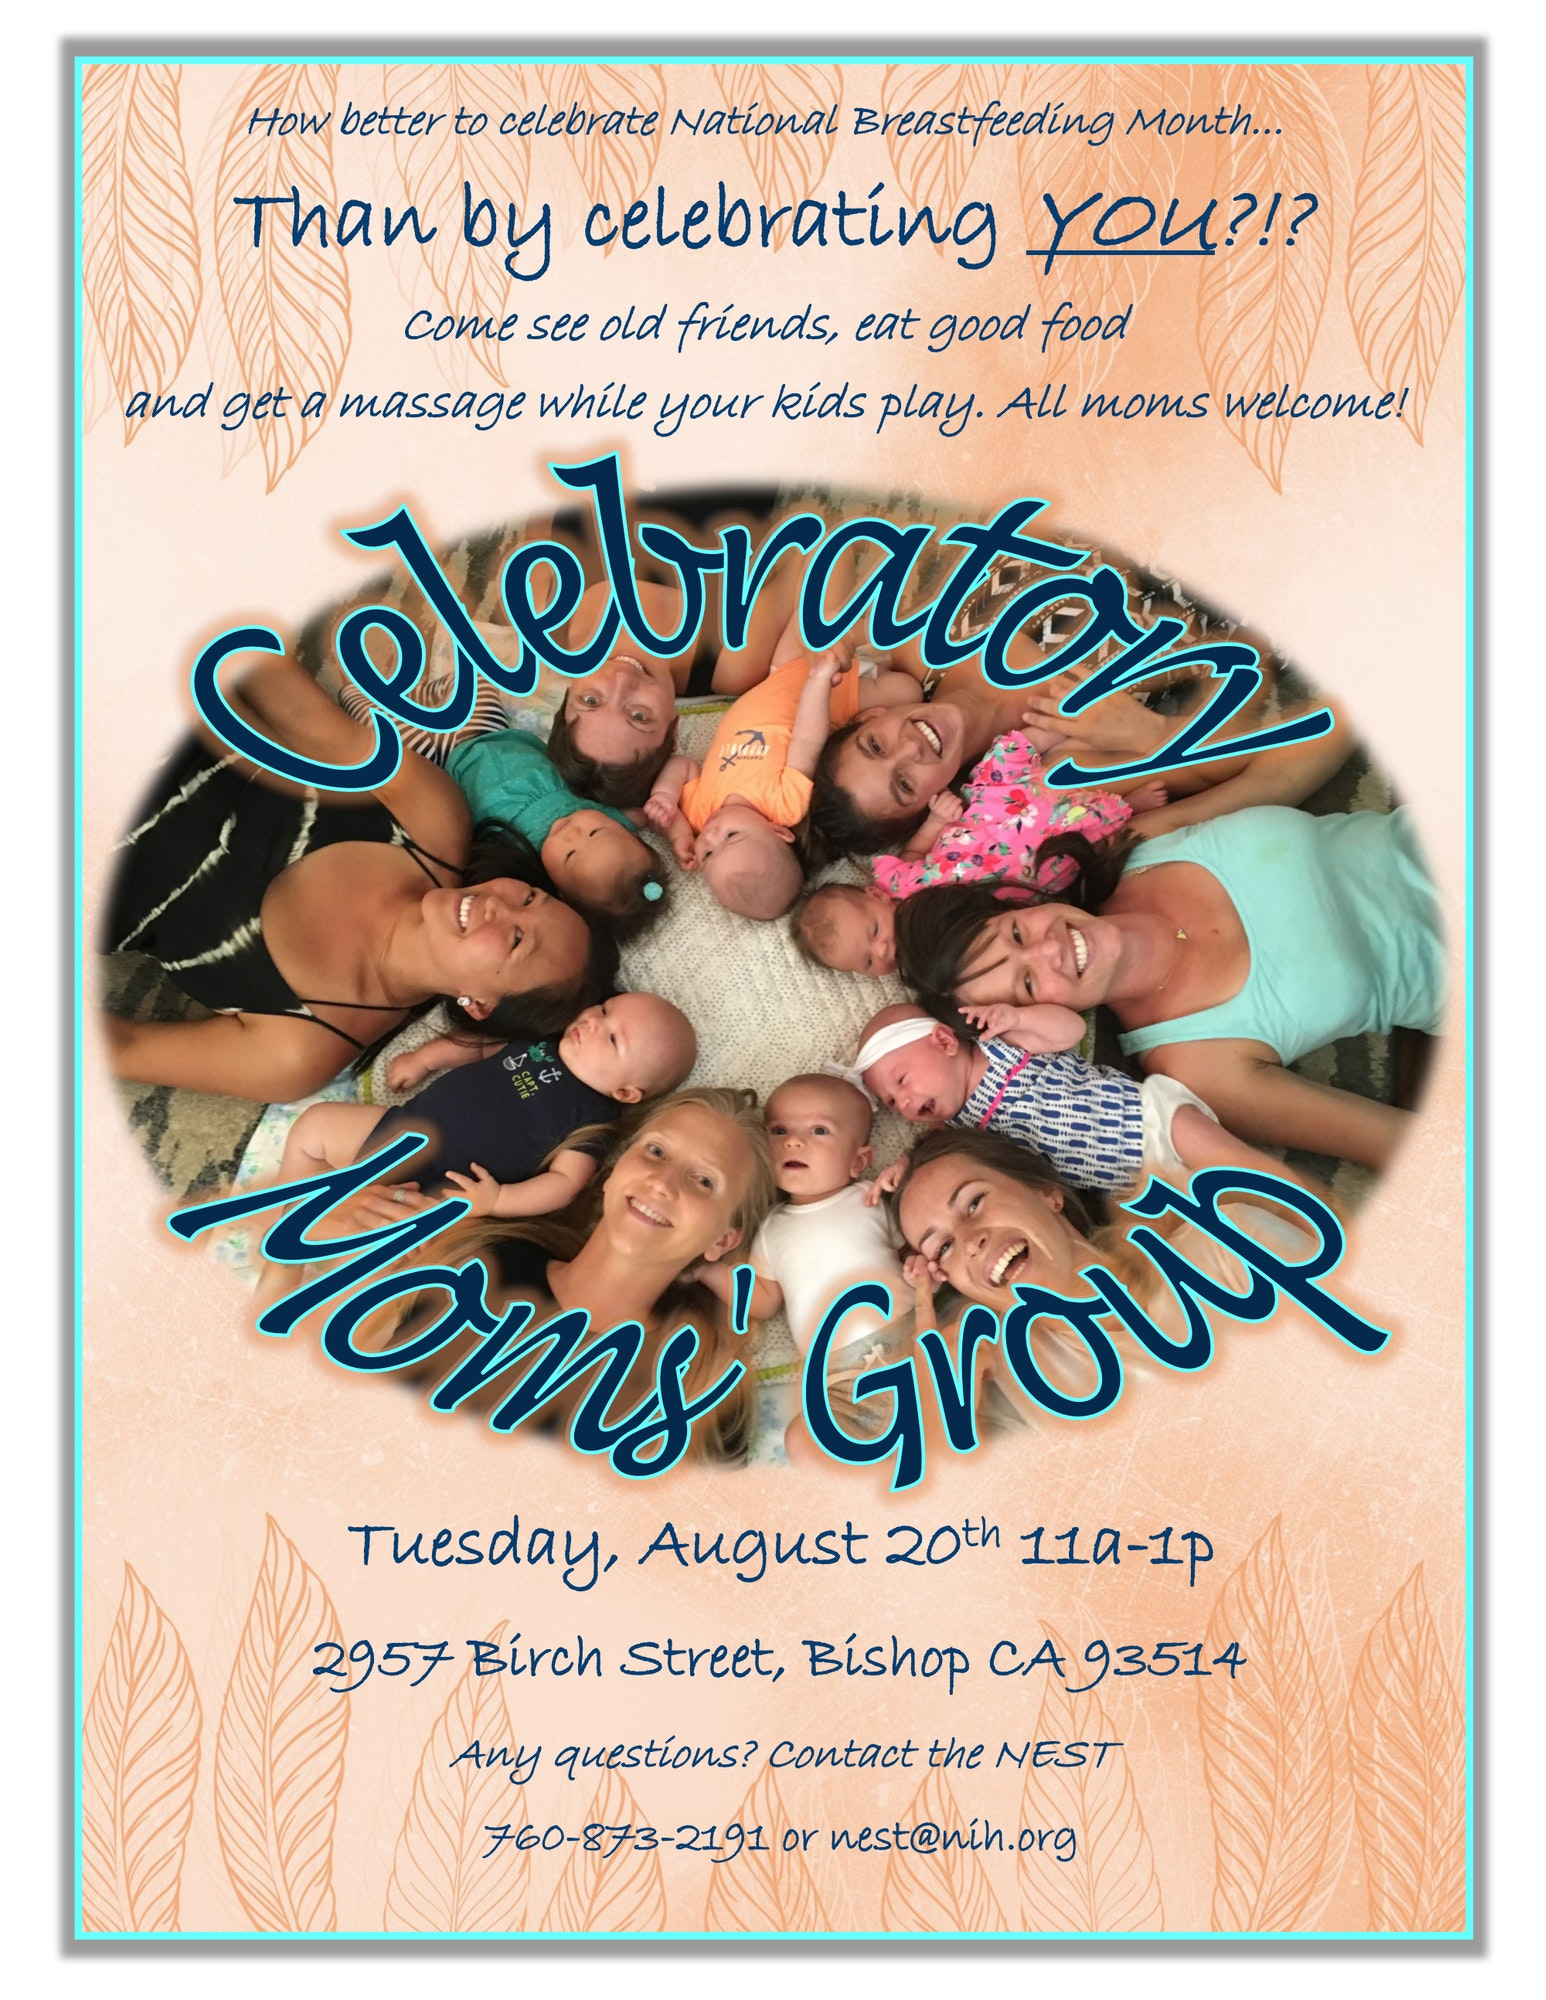 Poster for Celebratory Moms Group event